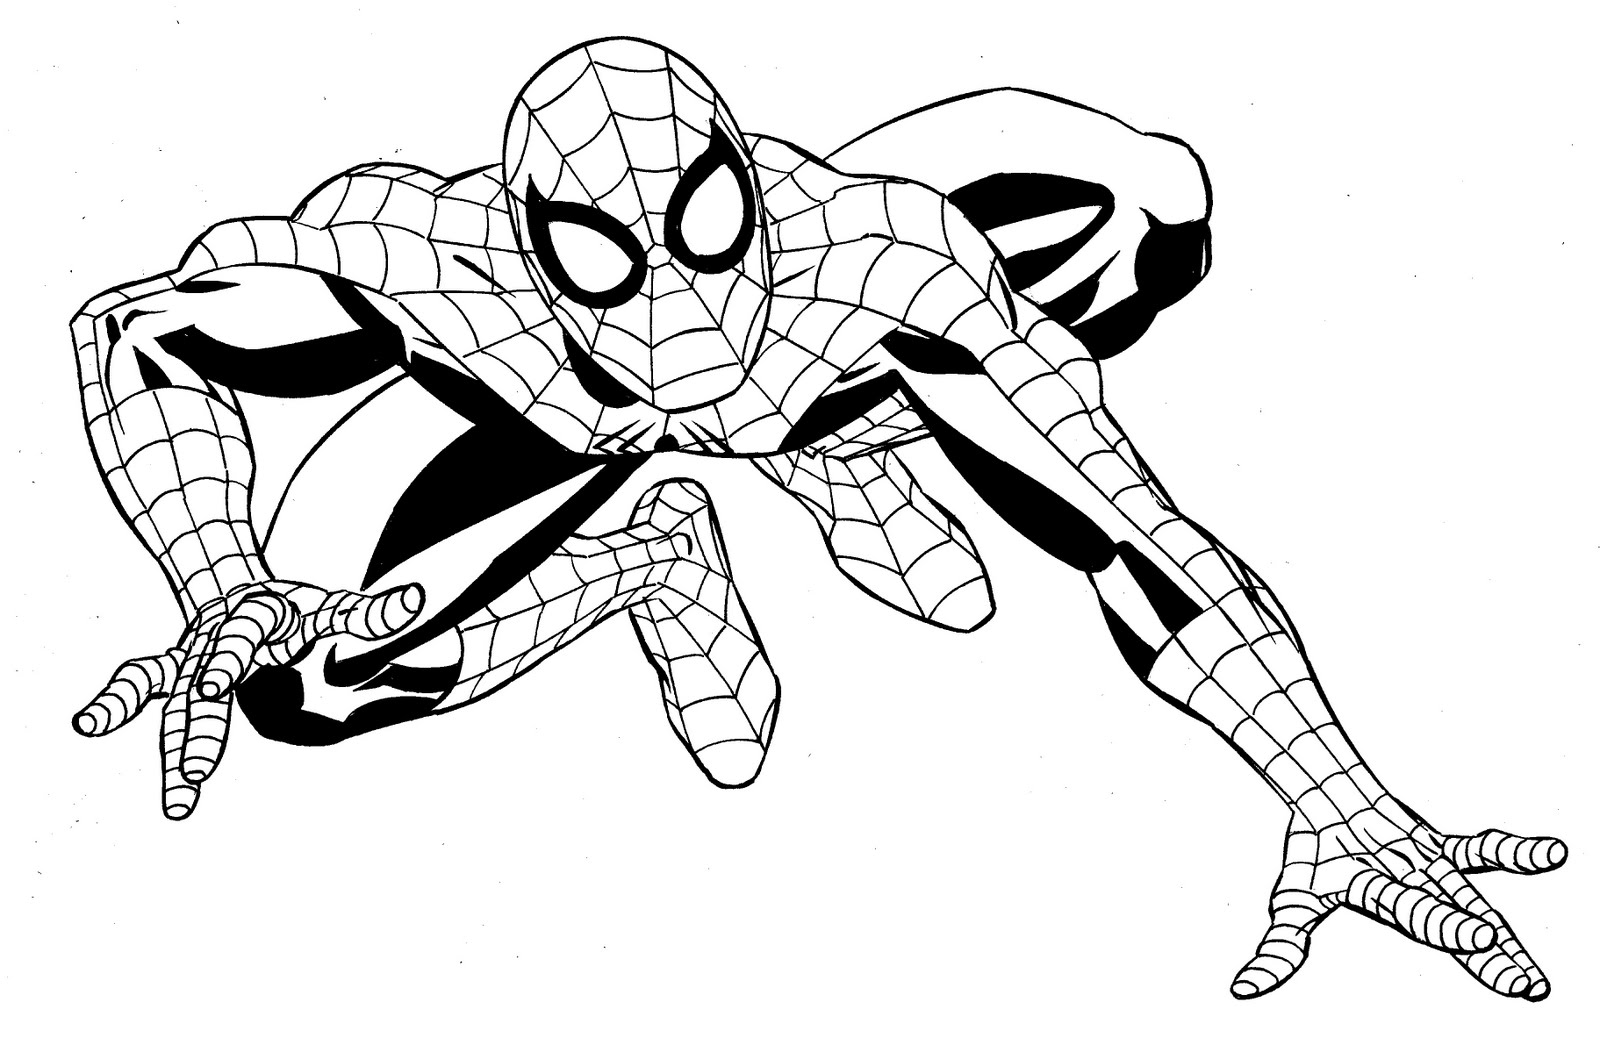 marvel superheroes coloring pages - photo#1